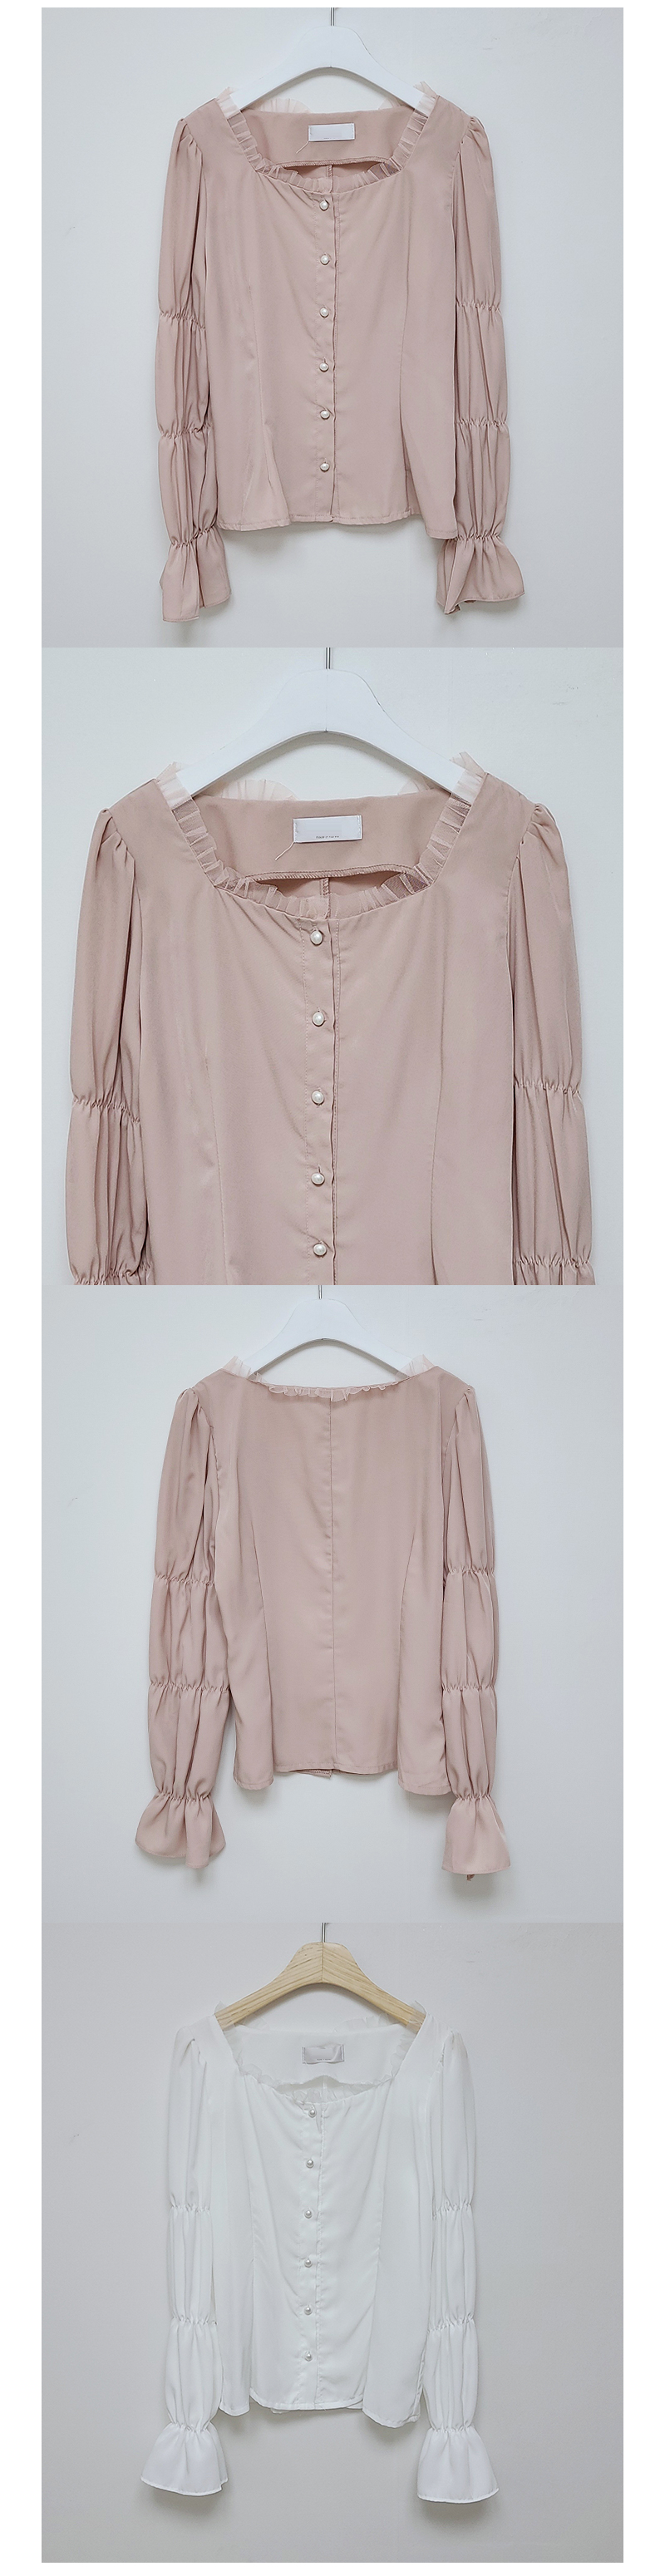 Laura Square Pearl Blouse